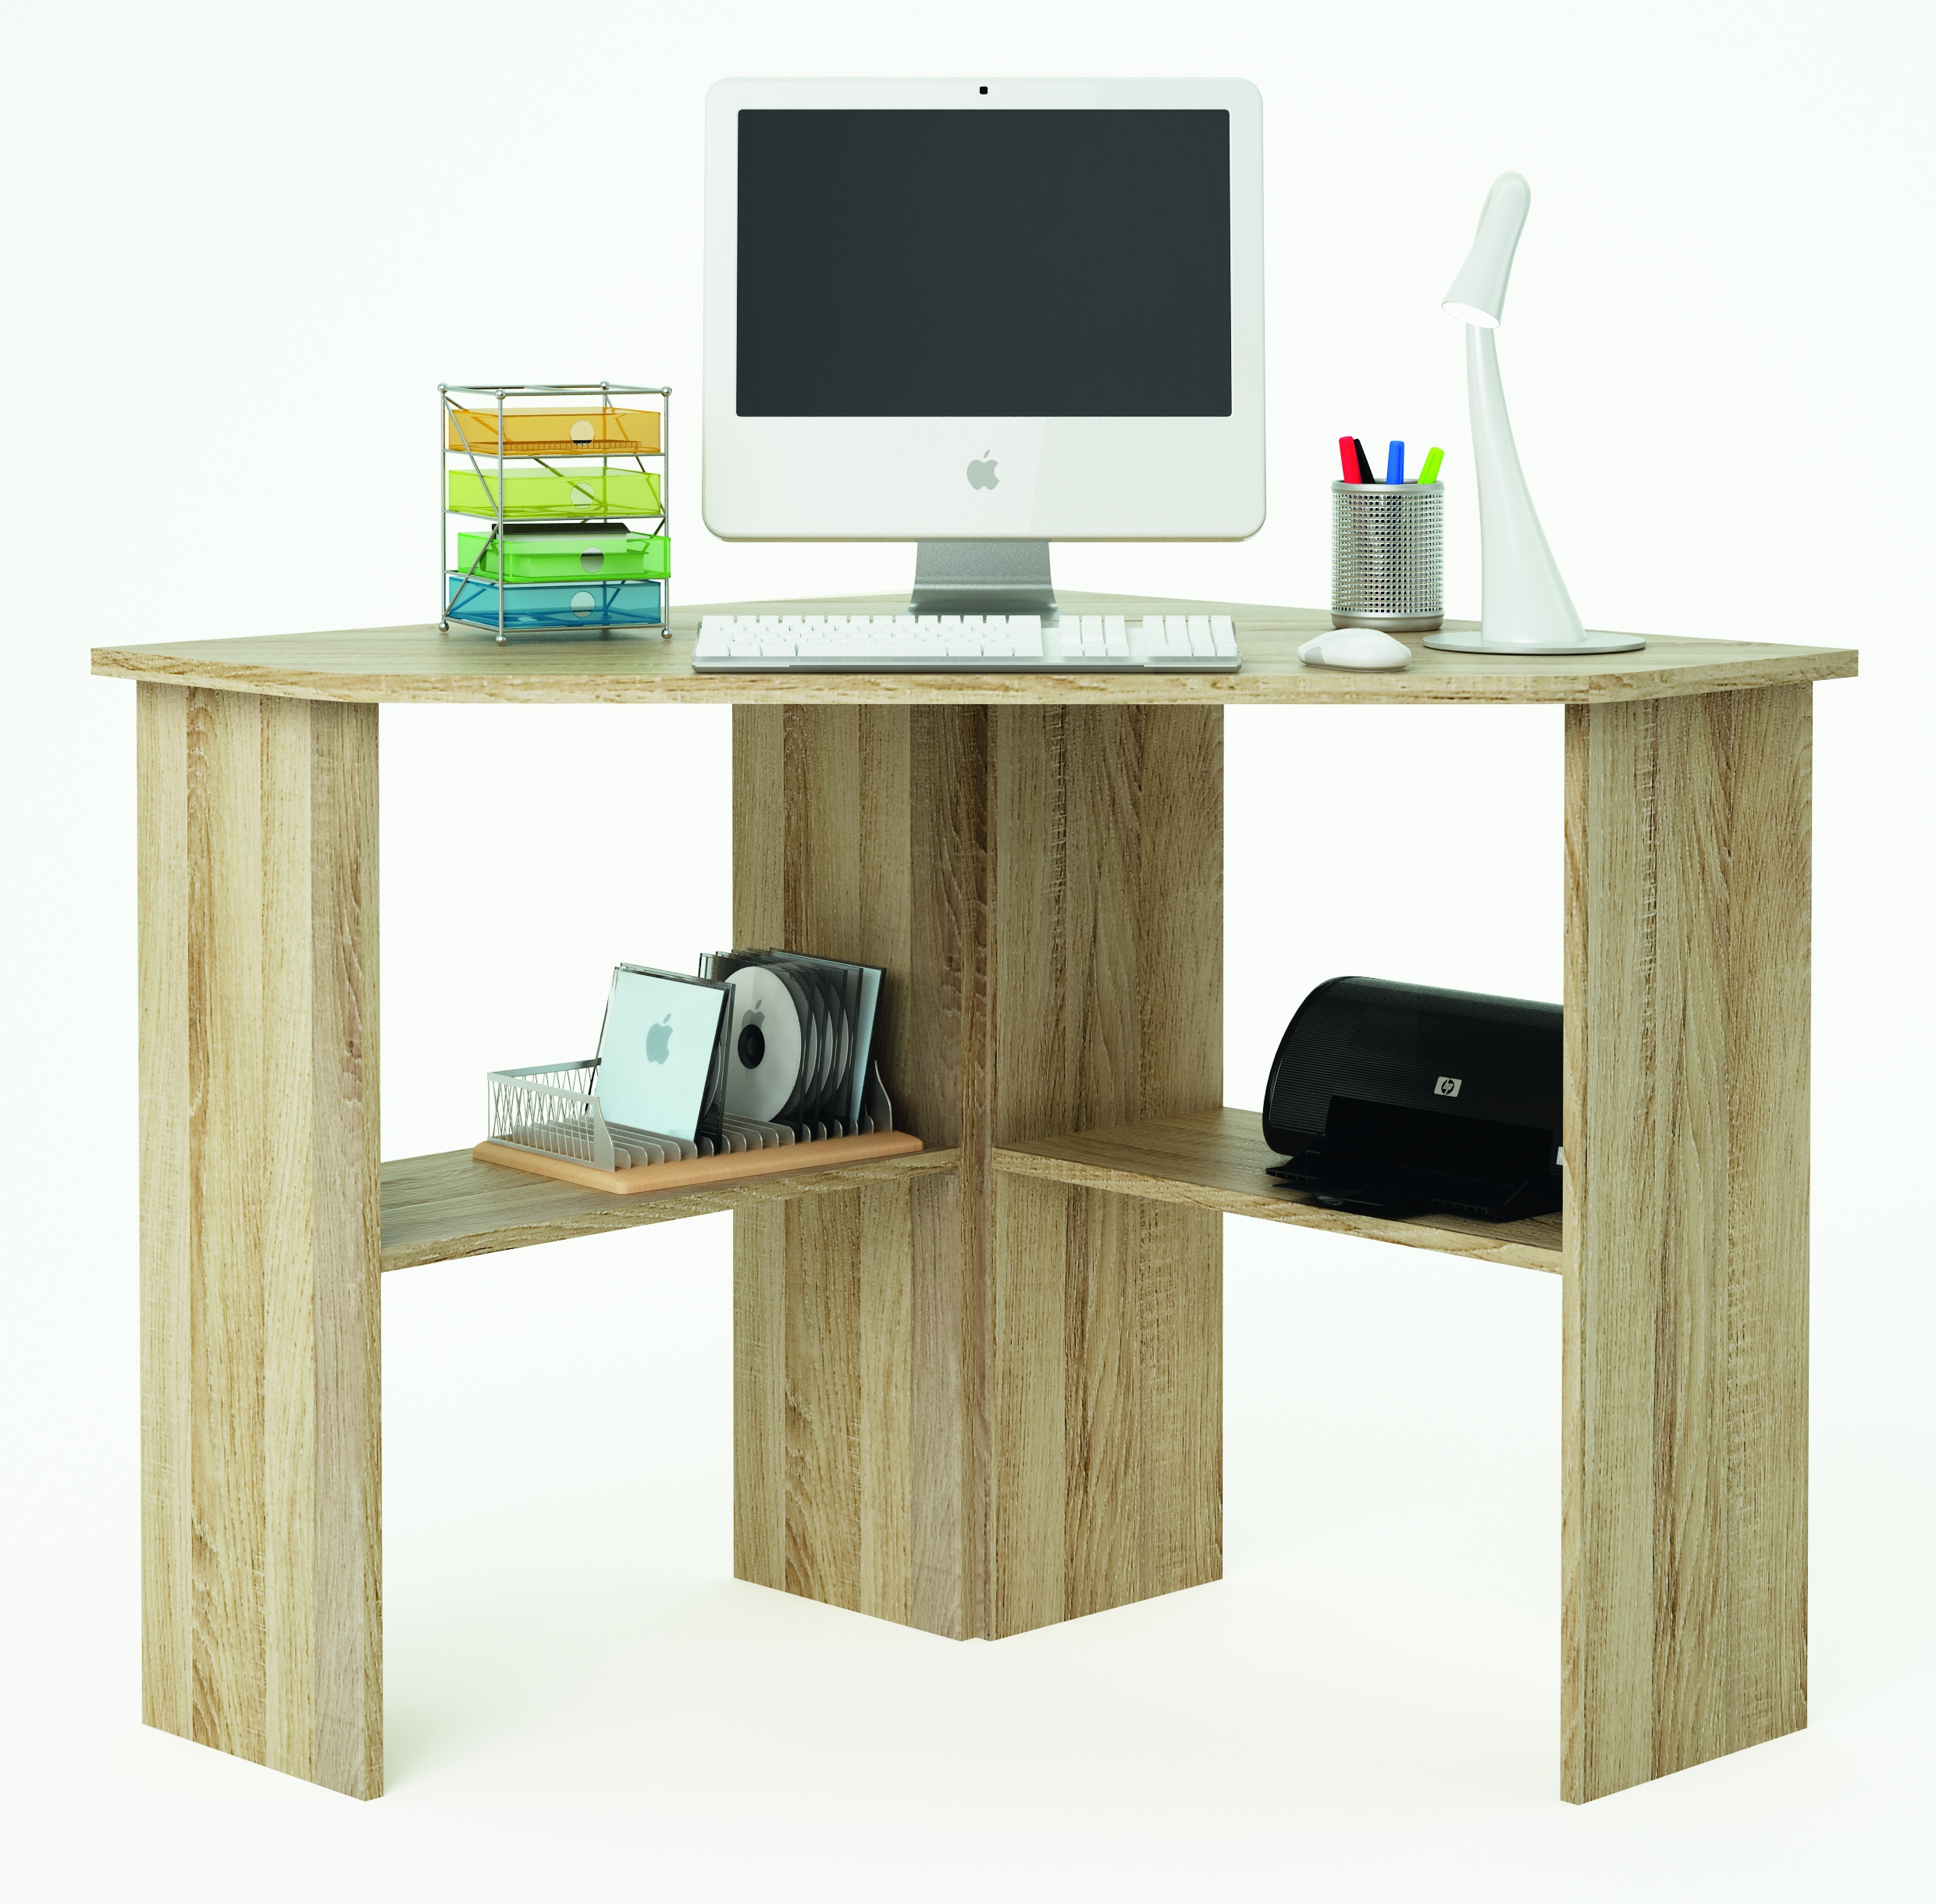 Bureau informatique dangle Acacia LesTendancesfr